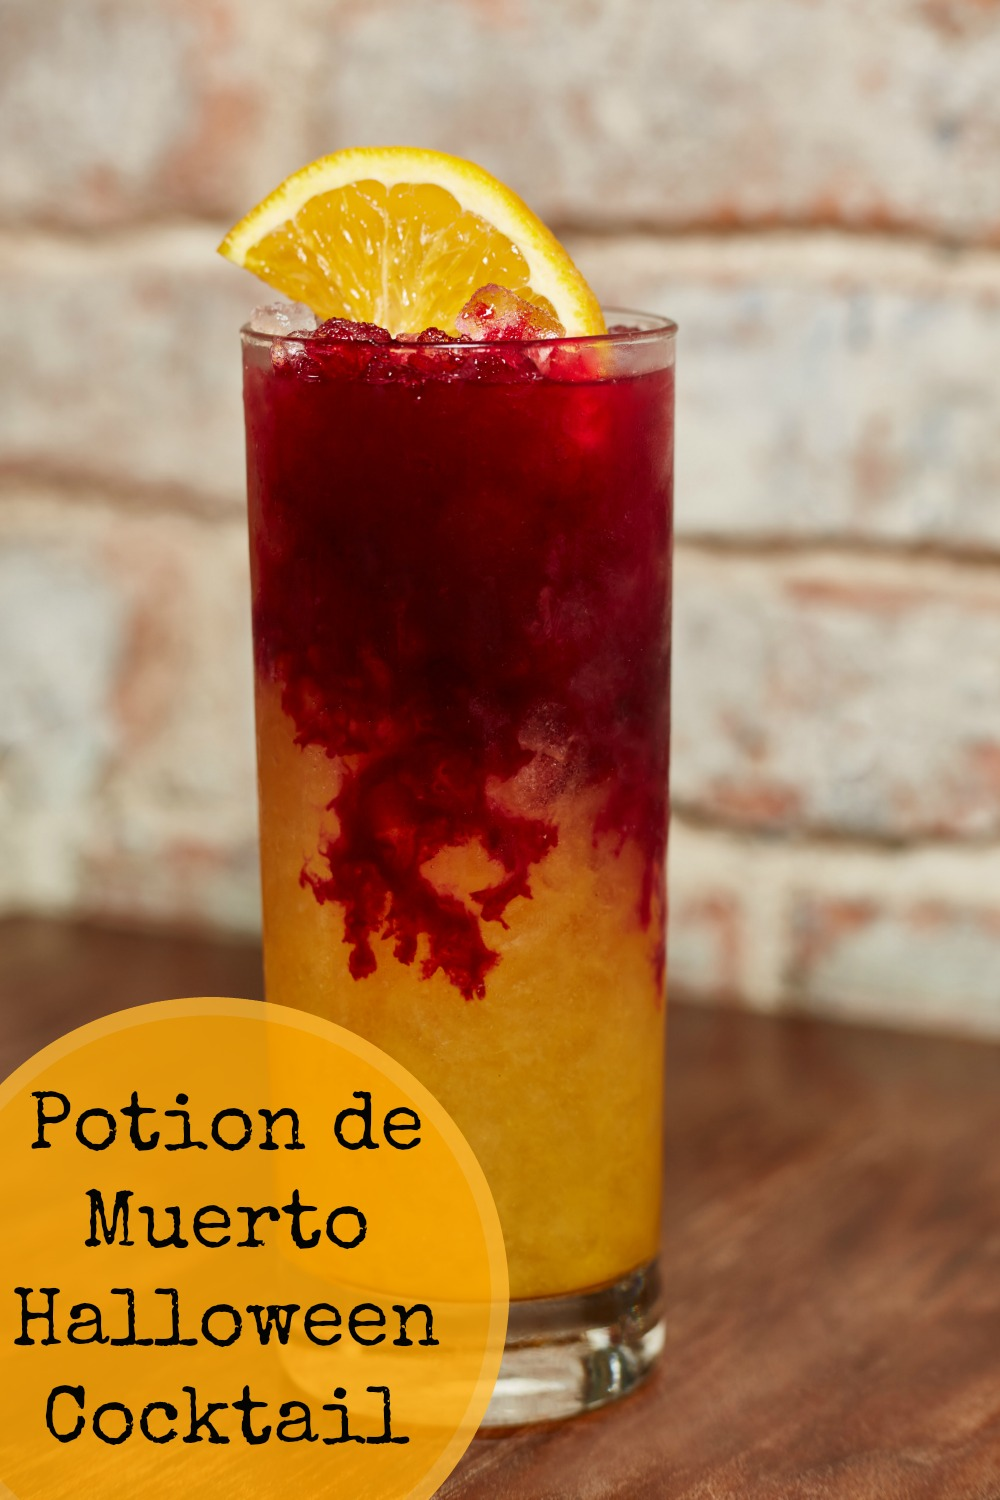 Make Potion de Muerto cocktails for Halloween. No one needs to know how easy this tequila based gory looking drink really is!